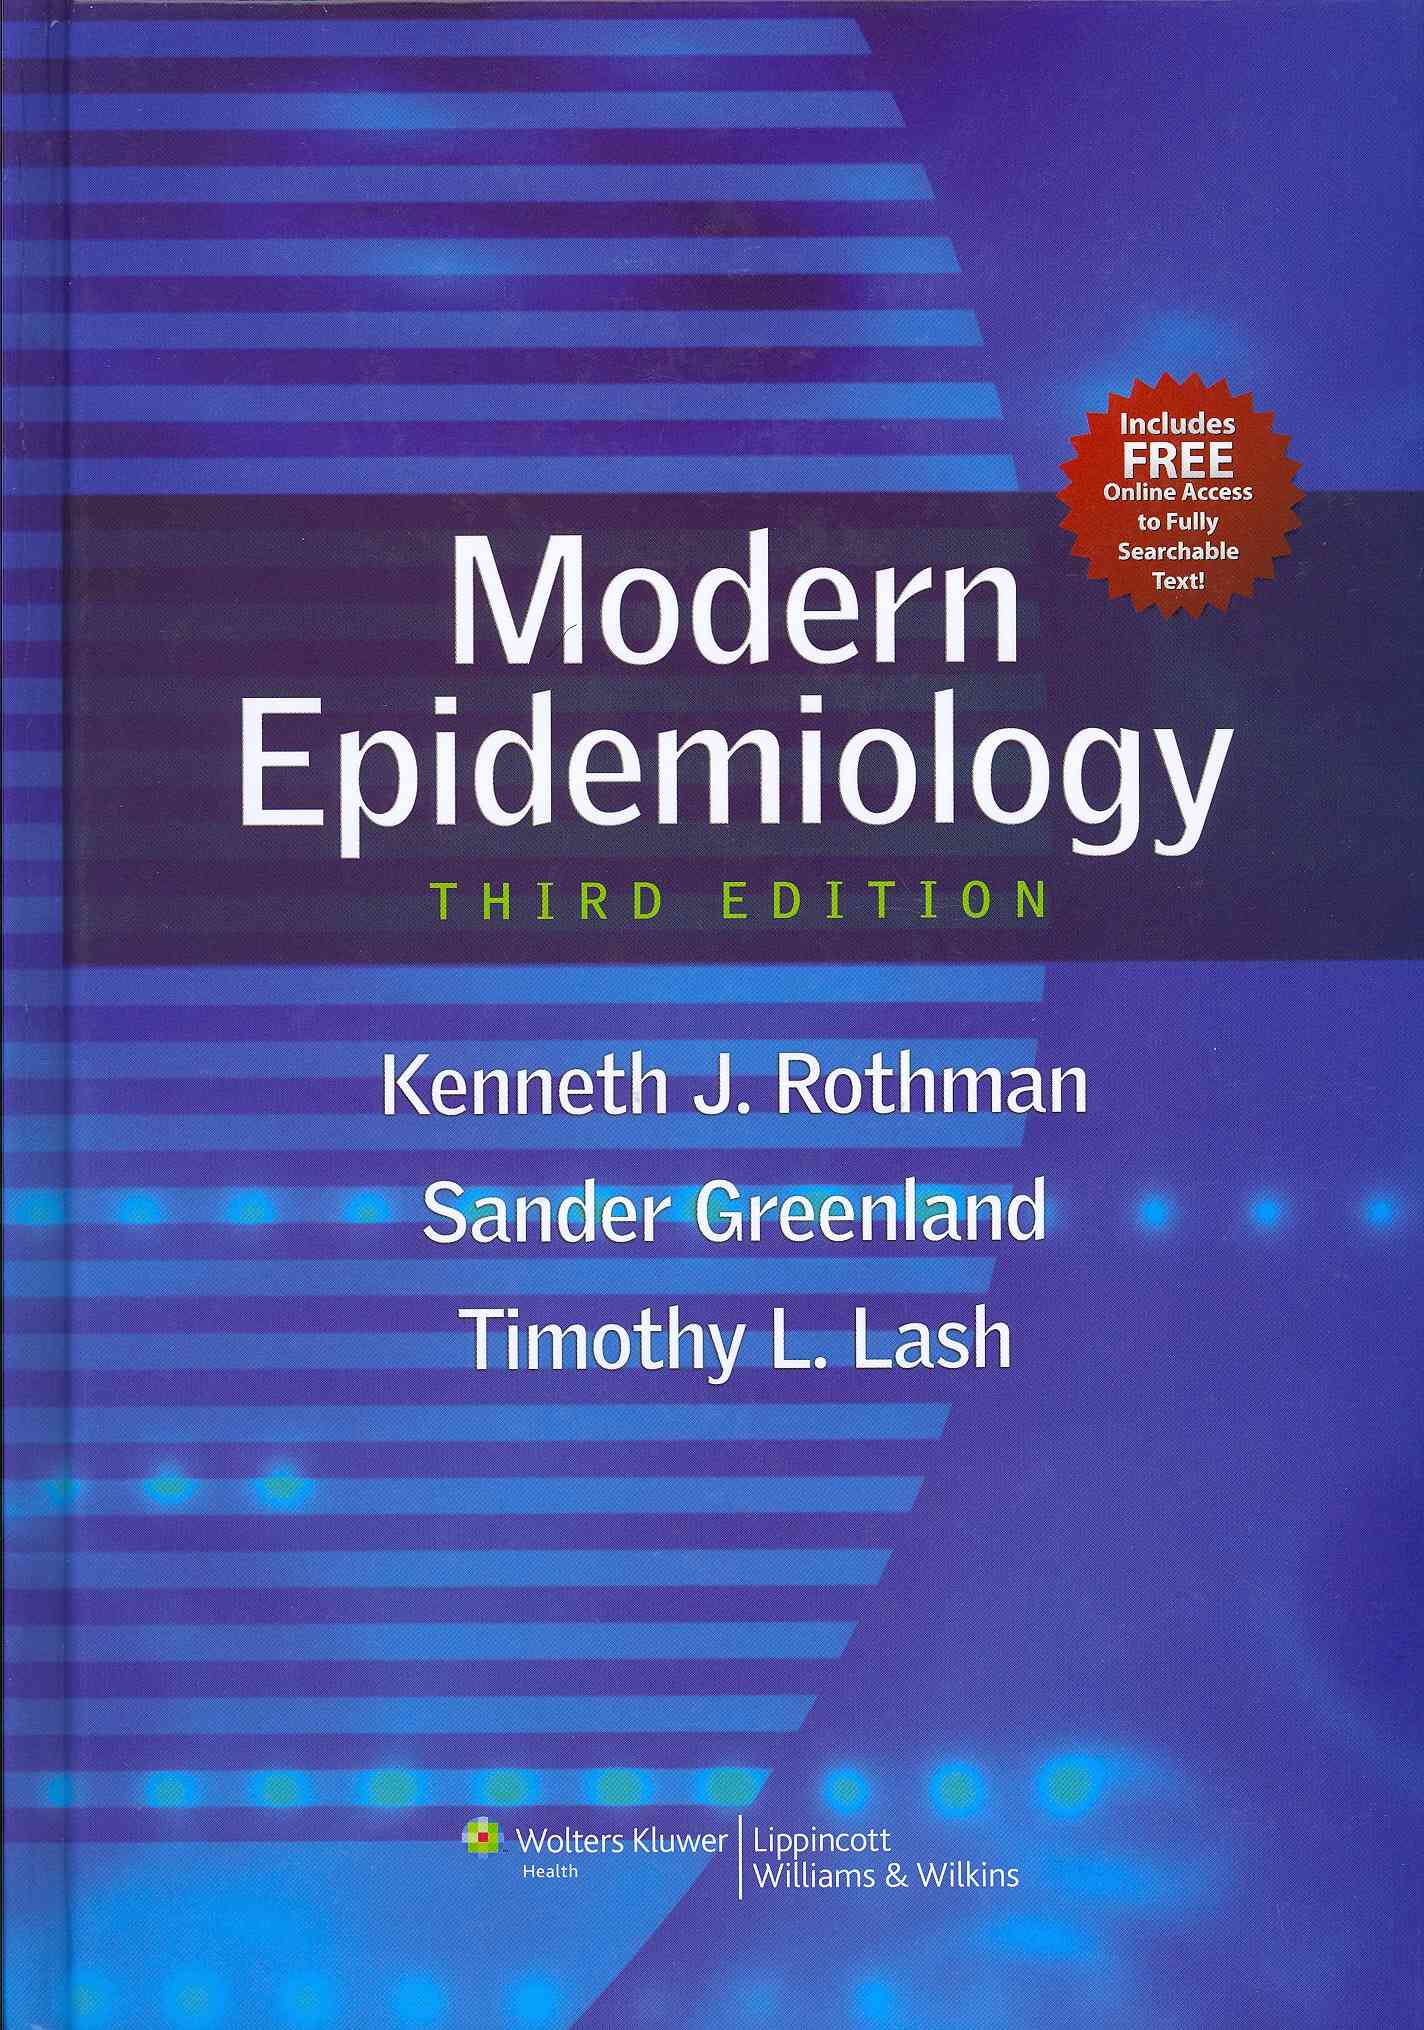 Modern Epidemiology, Mid-cycle Revision By Rothman, Kenneth J./ Lash, Timothy L./ Greenland, Sander